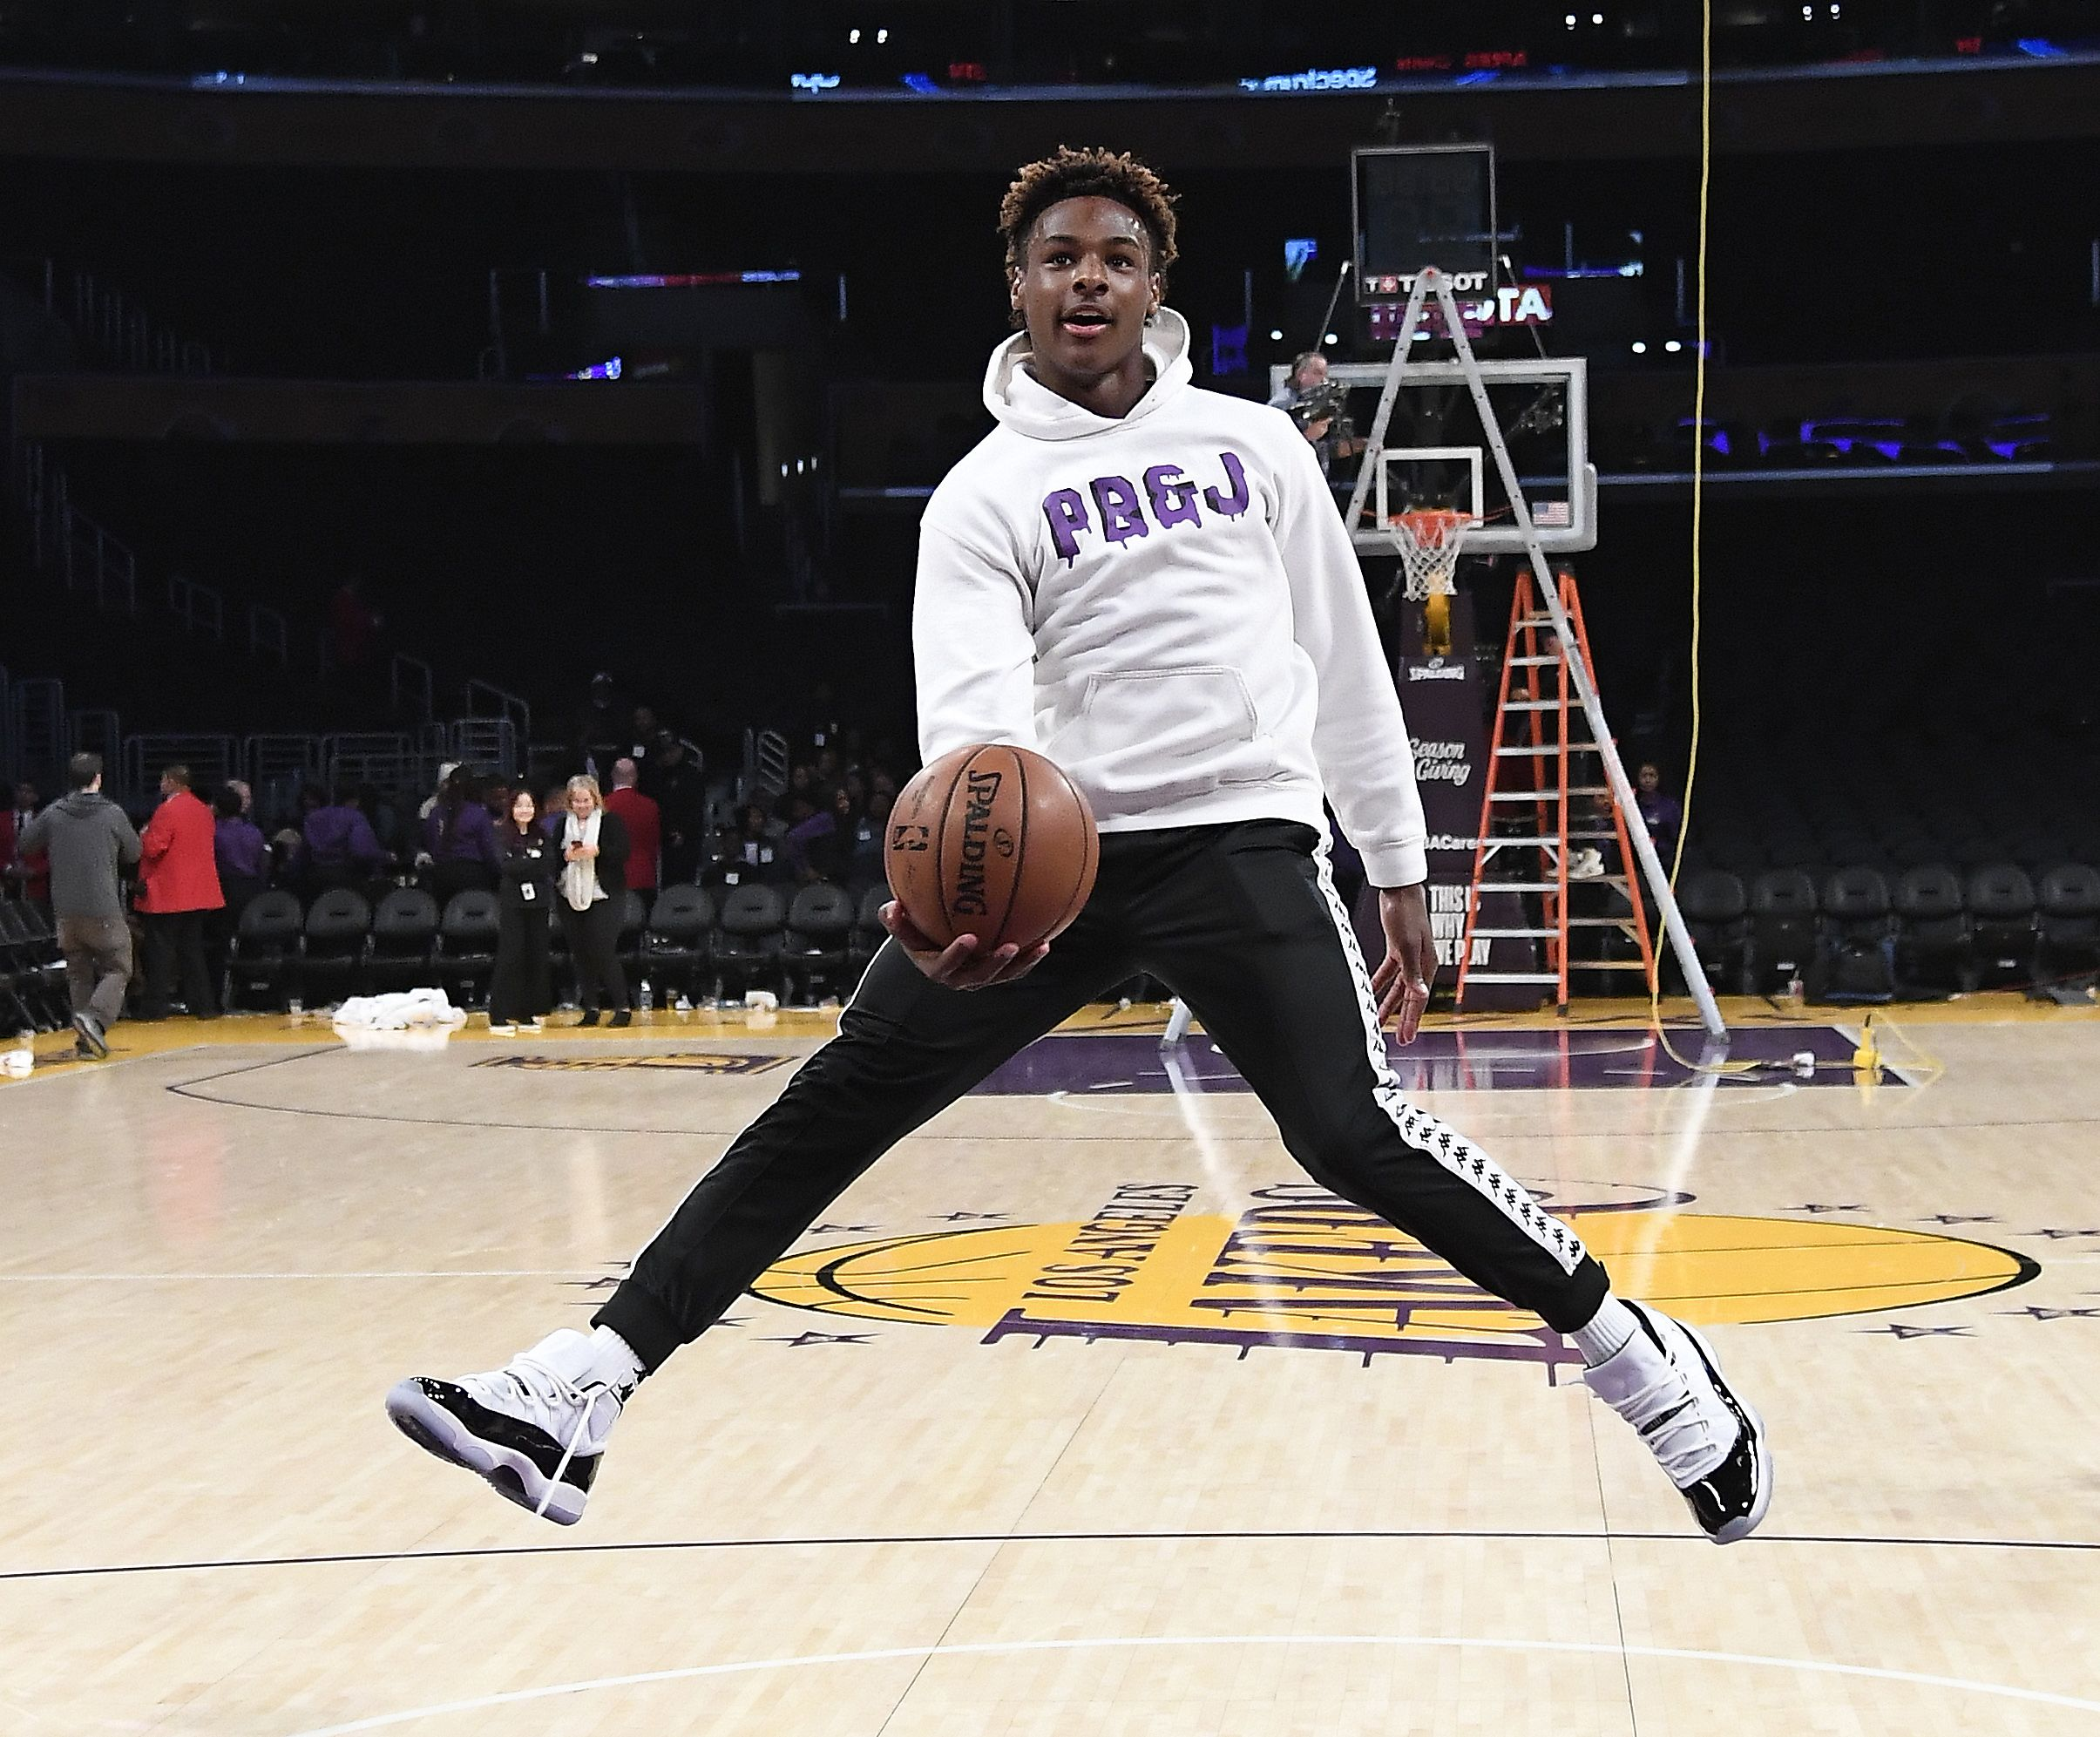 sports shoes c548e defc3 Who Is Bronny James? 1 Million Followers On Instagram Say ...